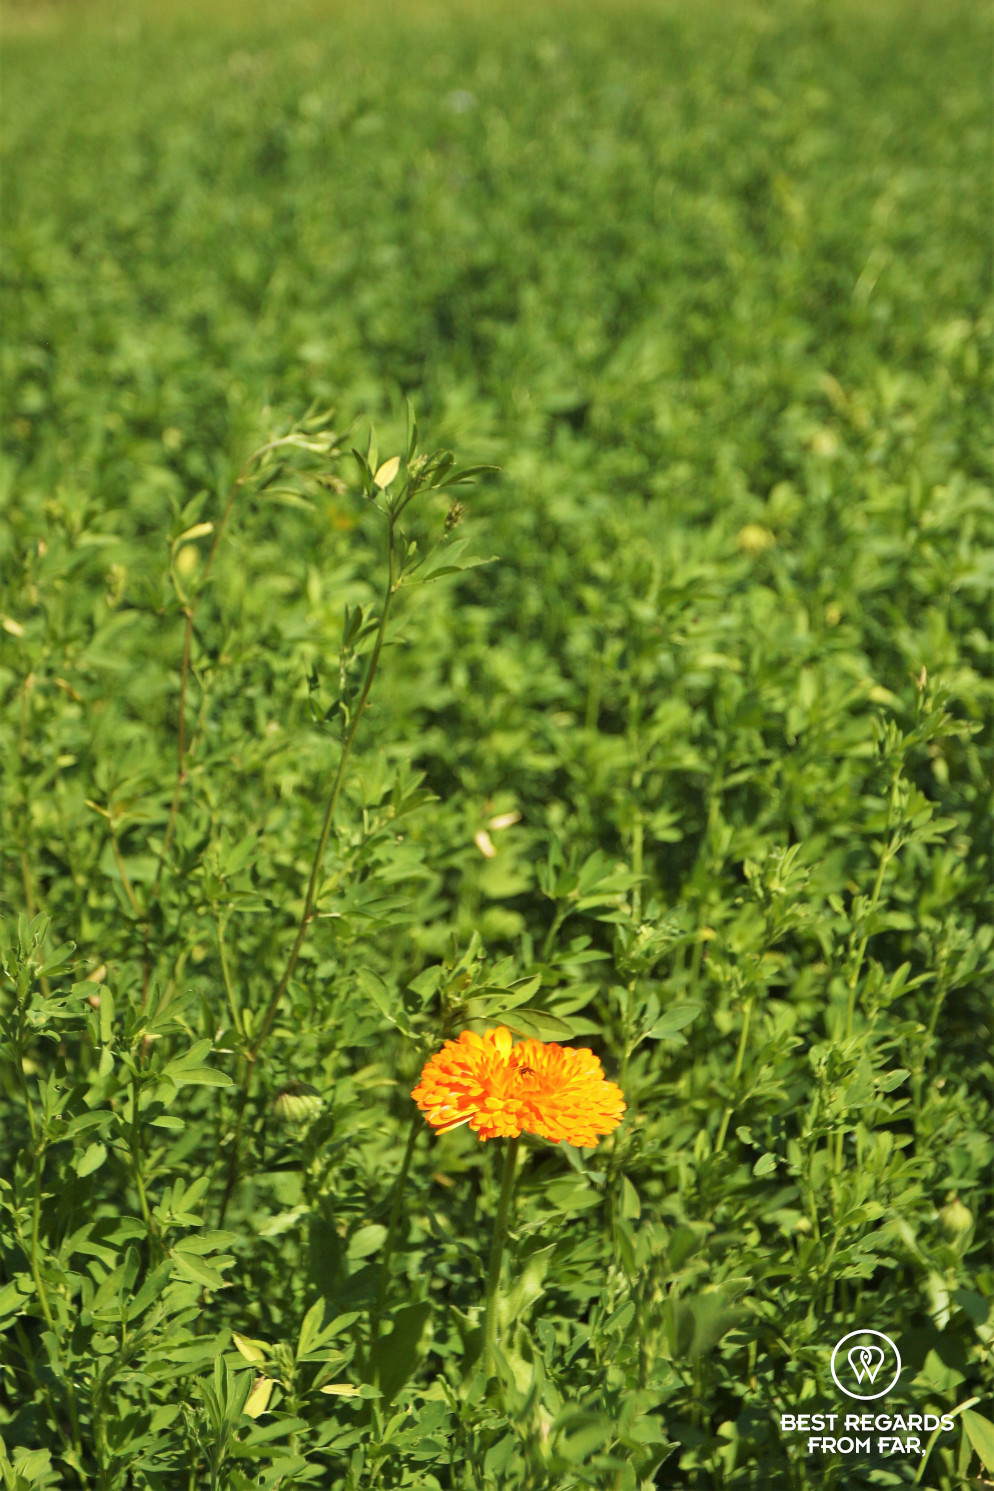 Contrasts with a bright orange flower in a green field at the King's Kitchen Garden in Versailles.